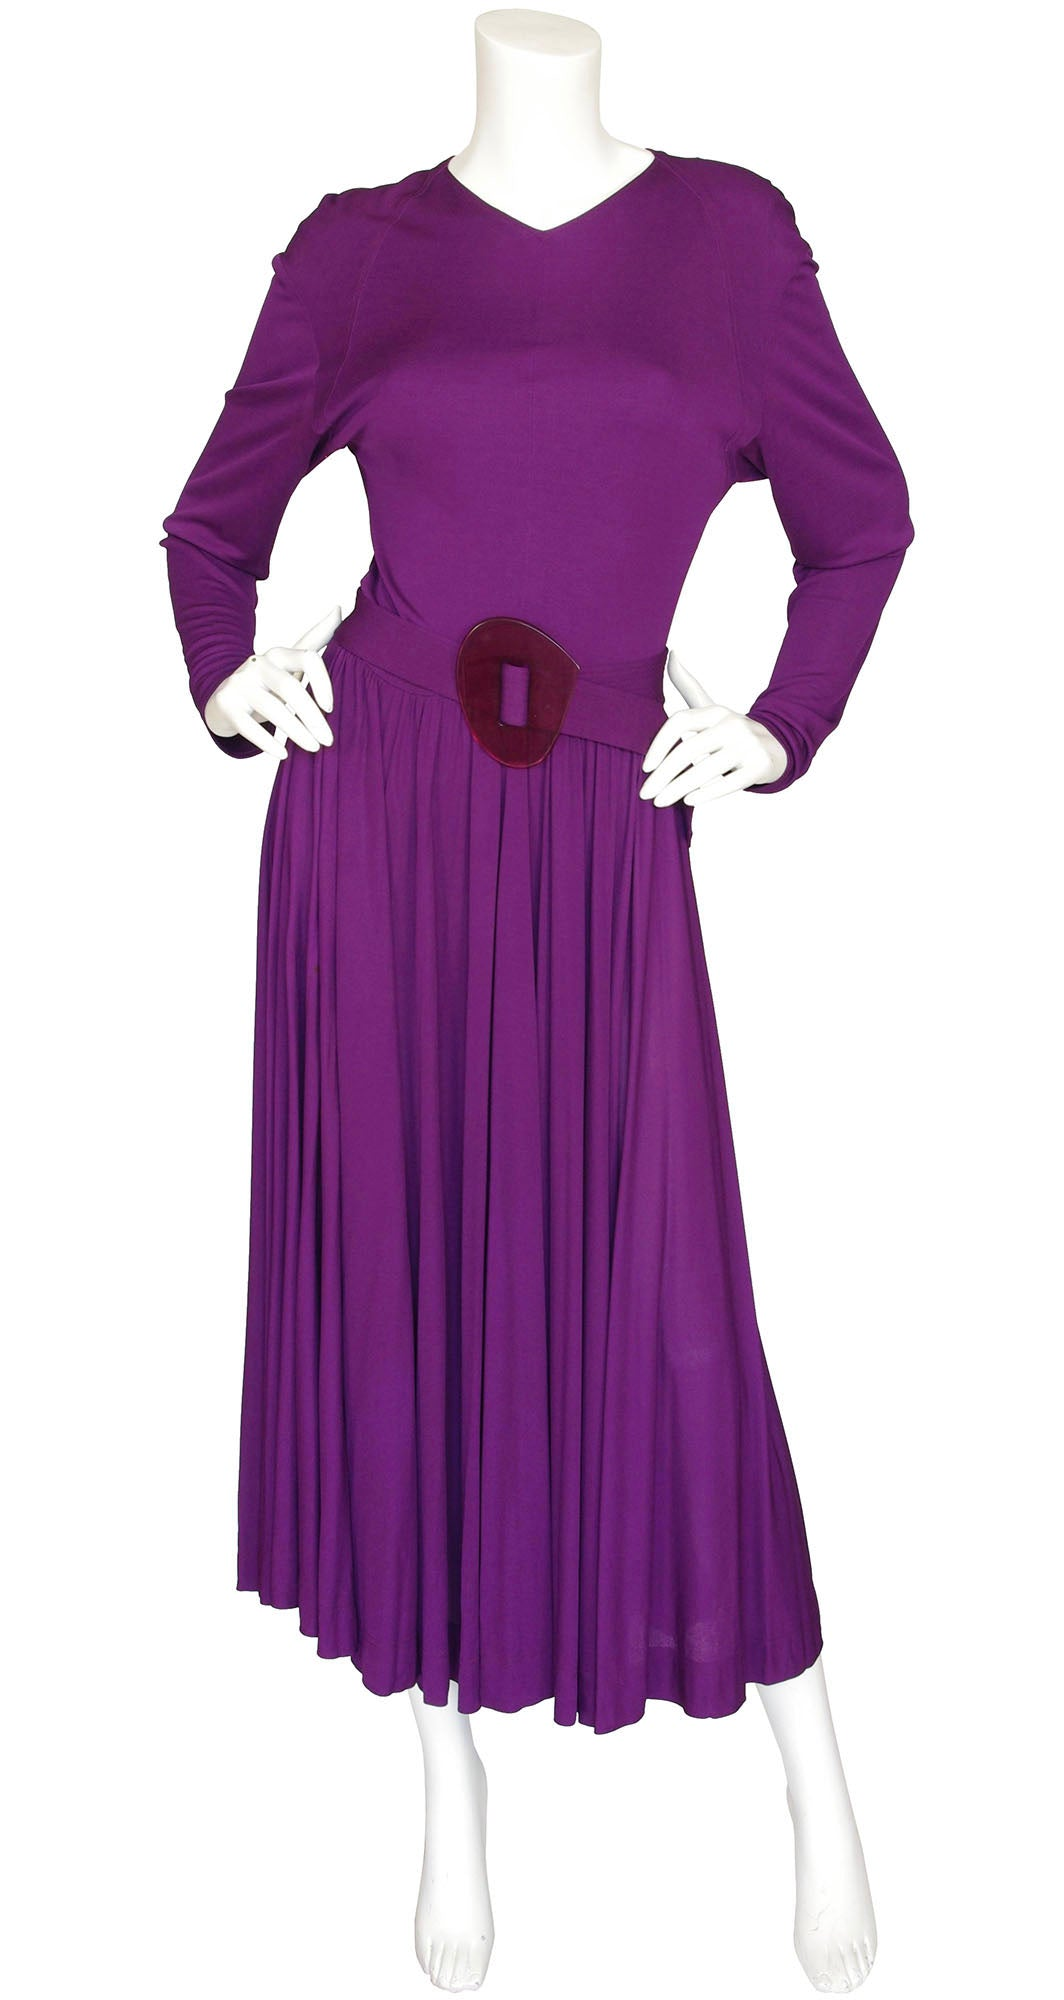 1970s Purple Viscose Jersey Dress